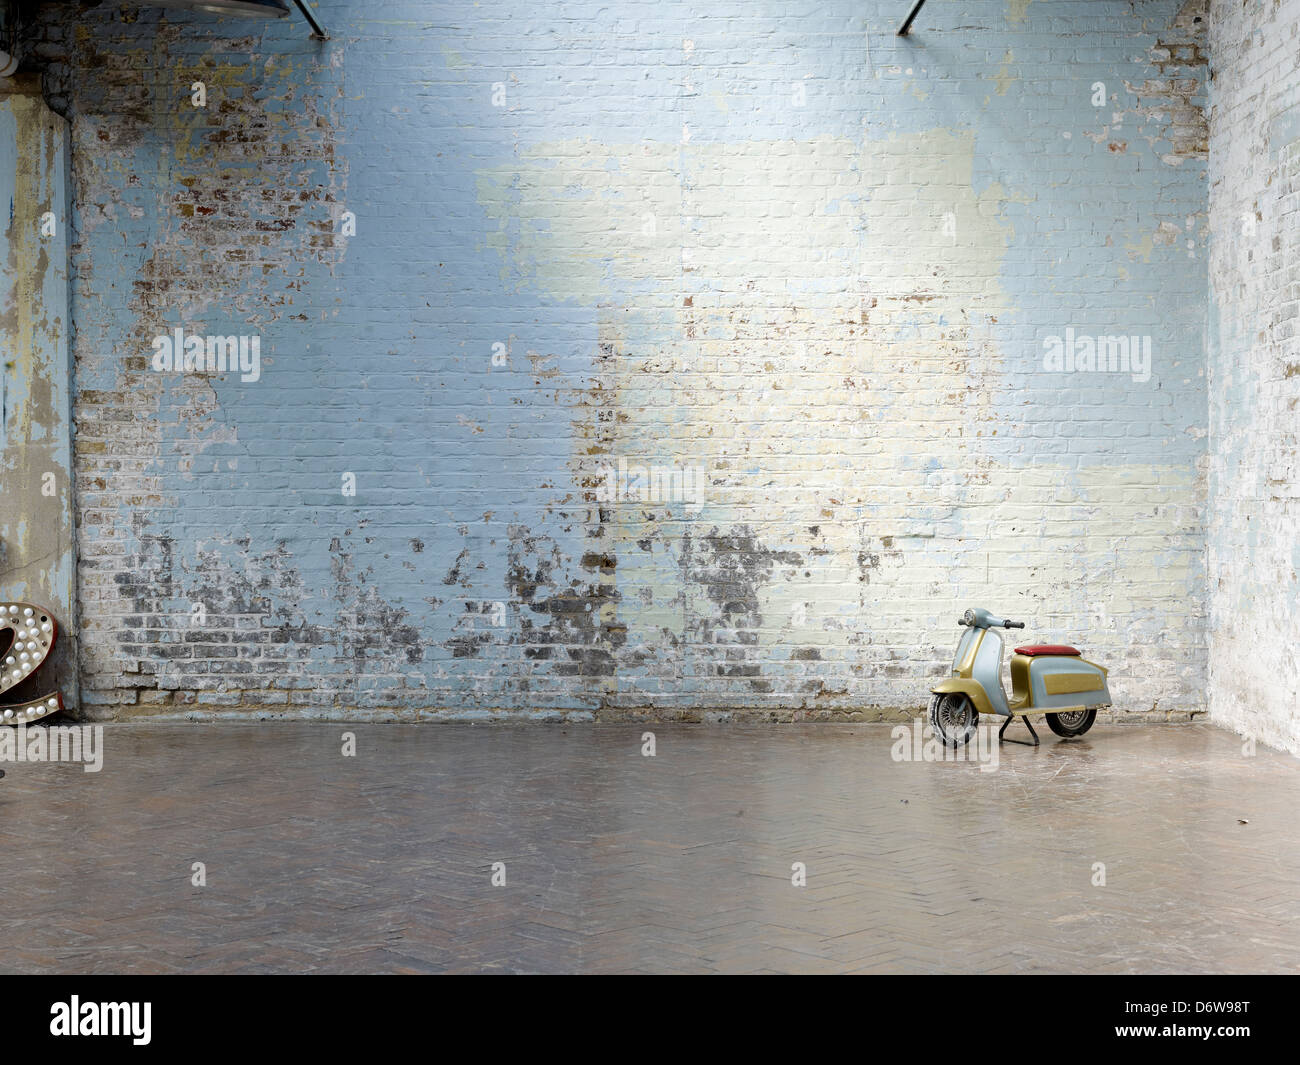 Old Painted Brick Wall Distressed Stock Photo 55875144